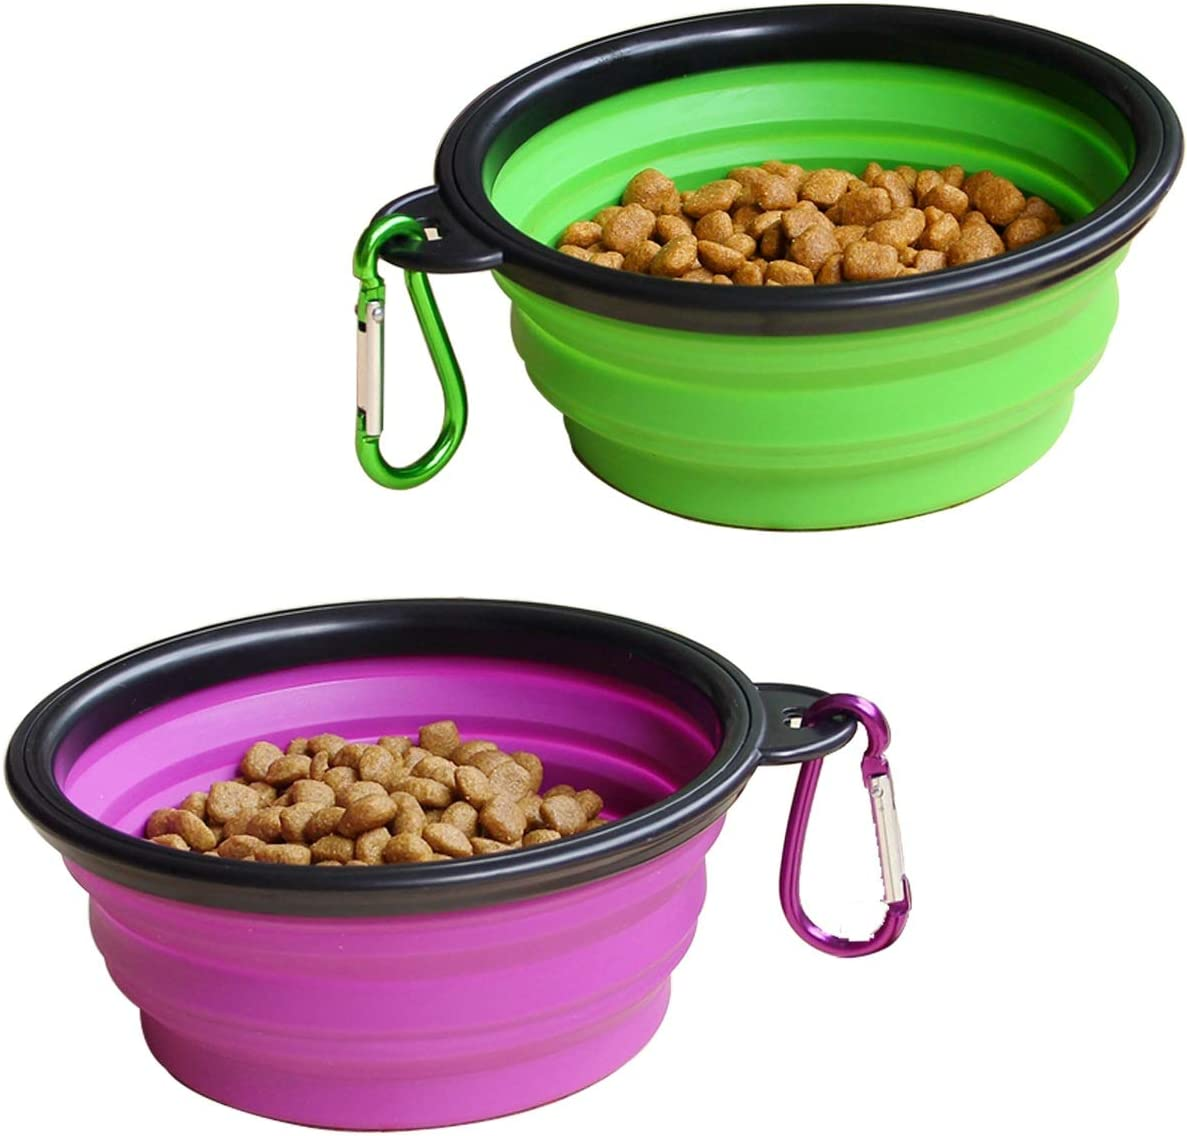 STARUBY 2-Pack Large Collapsible Dog Bowl, 7 Inch Foldable Pet Travel Bowl, Portable Cat Feeding Dish, for Outdoor Camping Pet Food Water Bowl Green and Purple